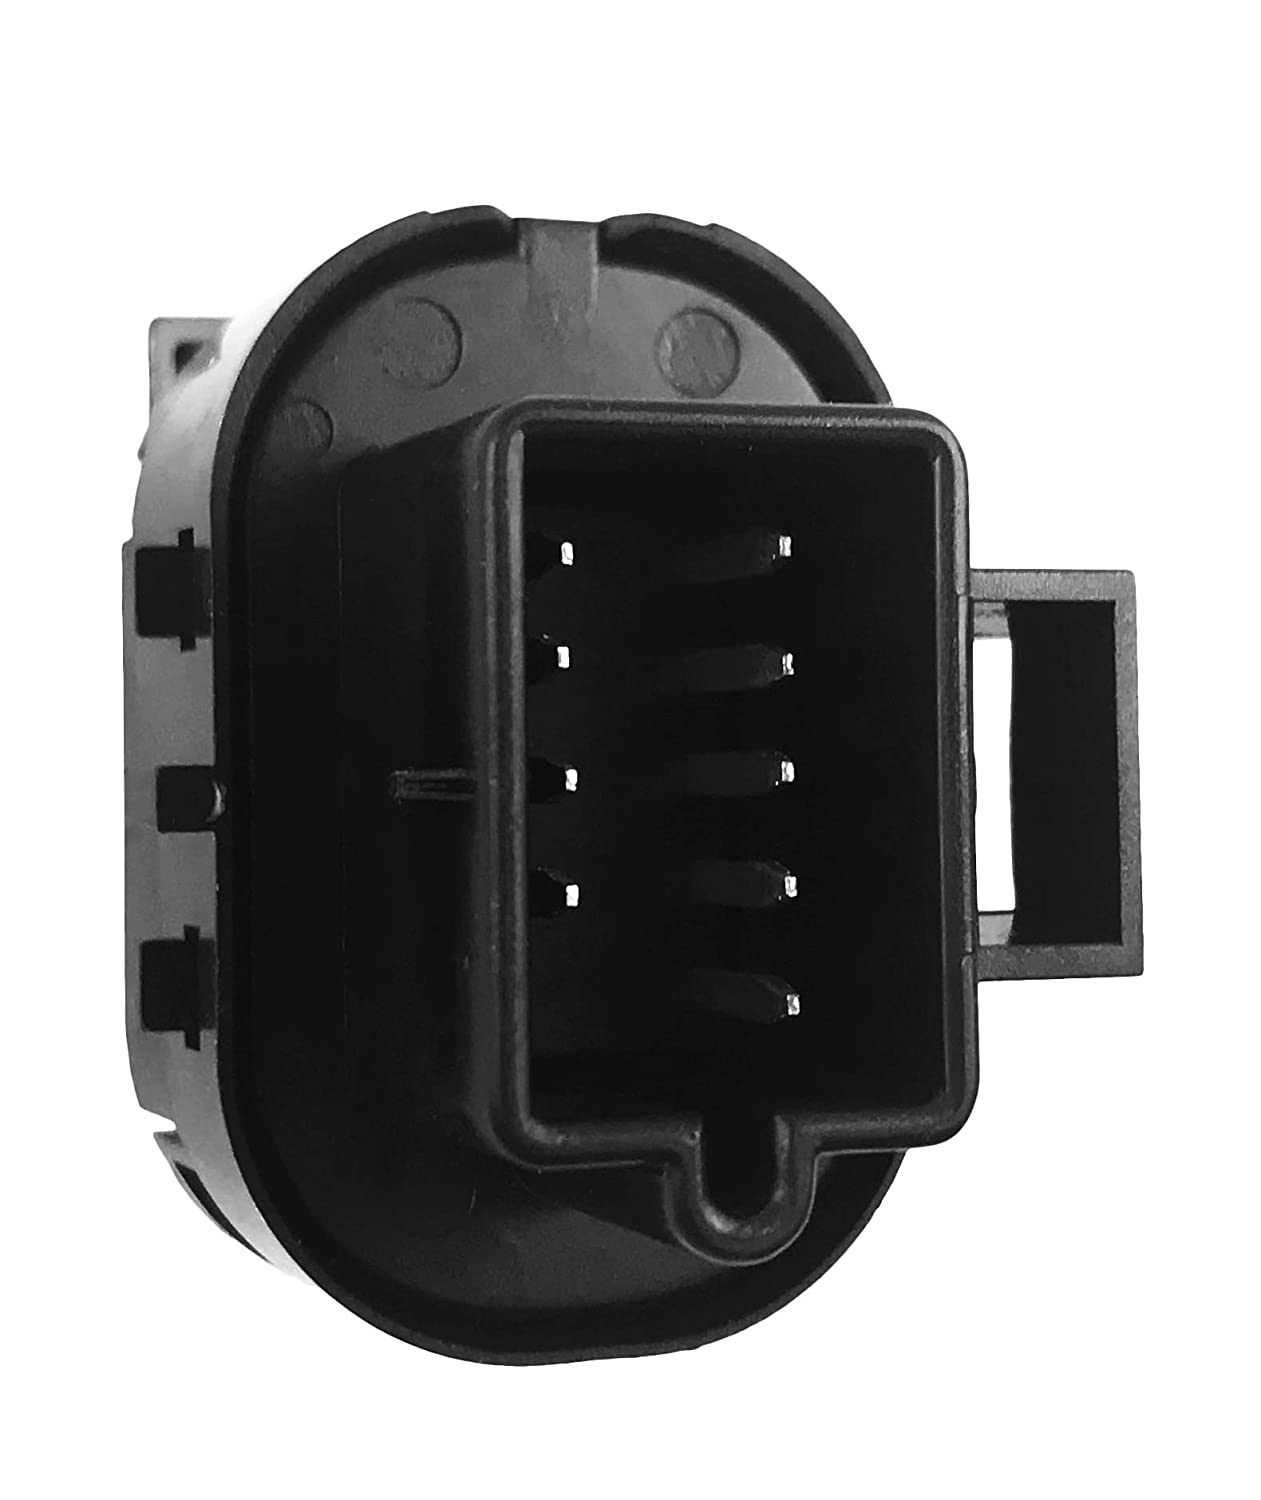 Exerock 22883768 25778970 Power Mirror Switch fit for 2007-2013 Chevy Silverado 1500 2007-2014 Chevy Silverado 2500 HD 2007-2013 GMC Sierra 1500 2007-2014 GMC Sierra 2500 HD 3500